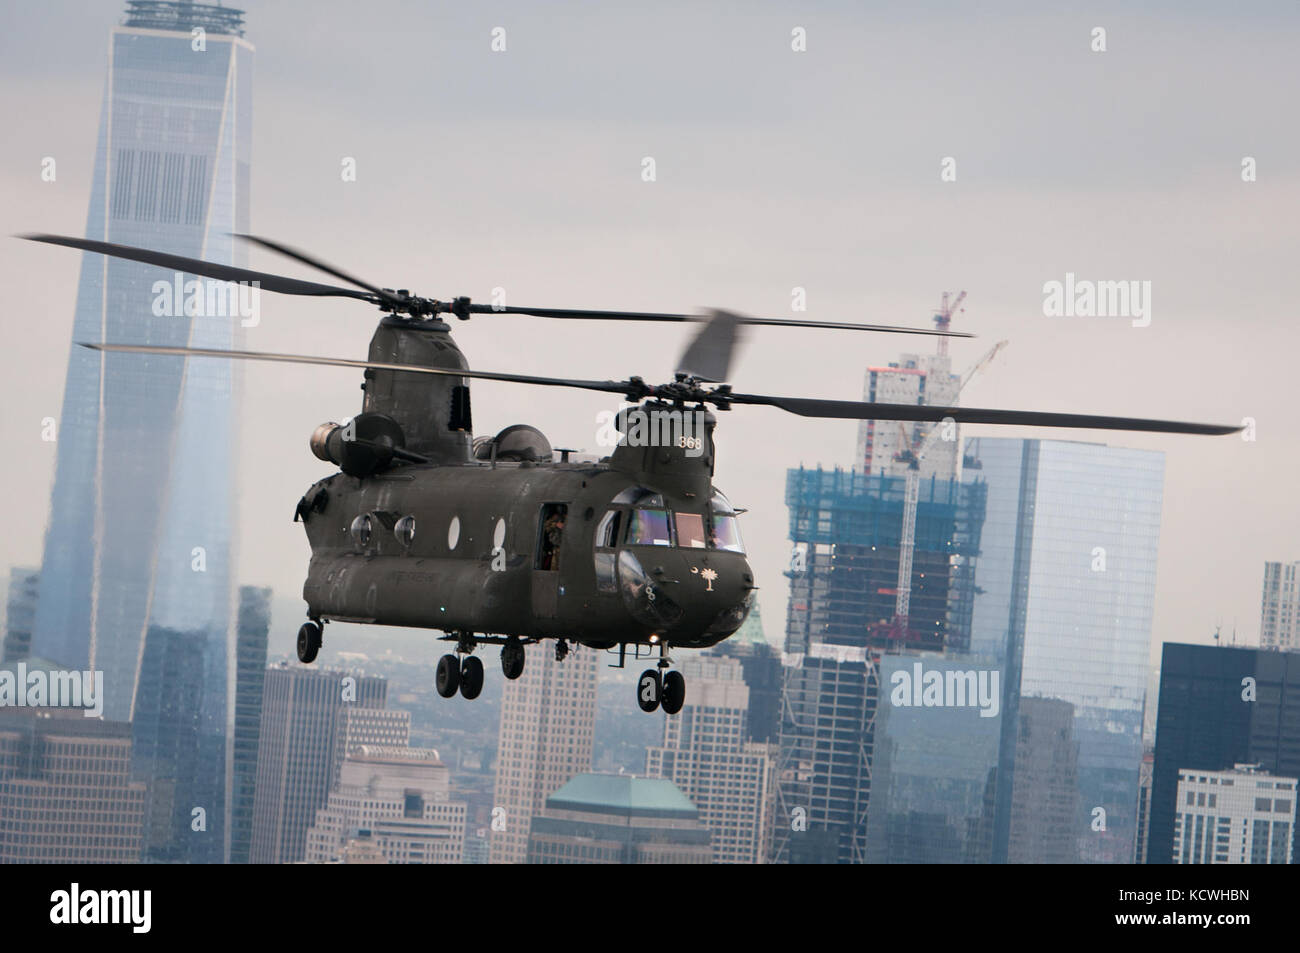 A South Carolina Army National Guard (SCARNG) CH-47D Chinook helicopter flies on the Hudson River, in front of One Stock Photo